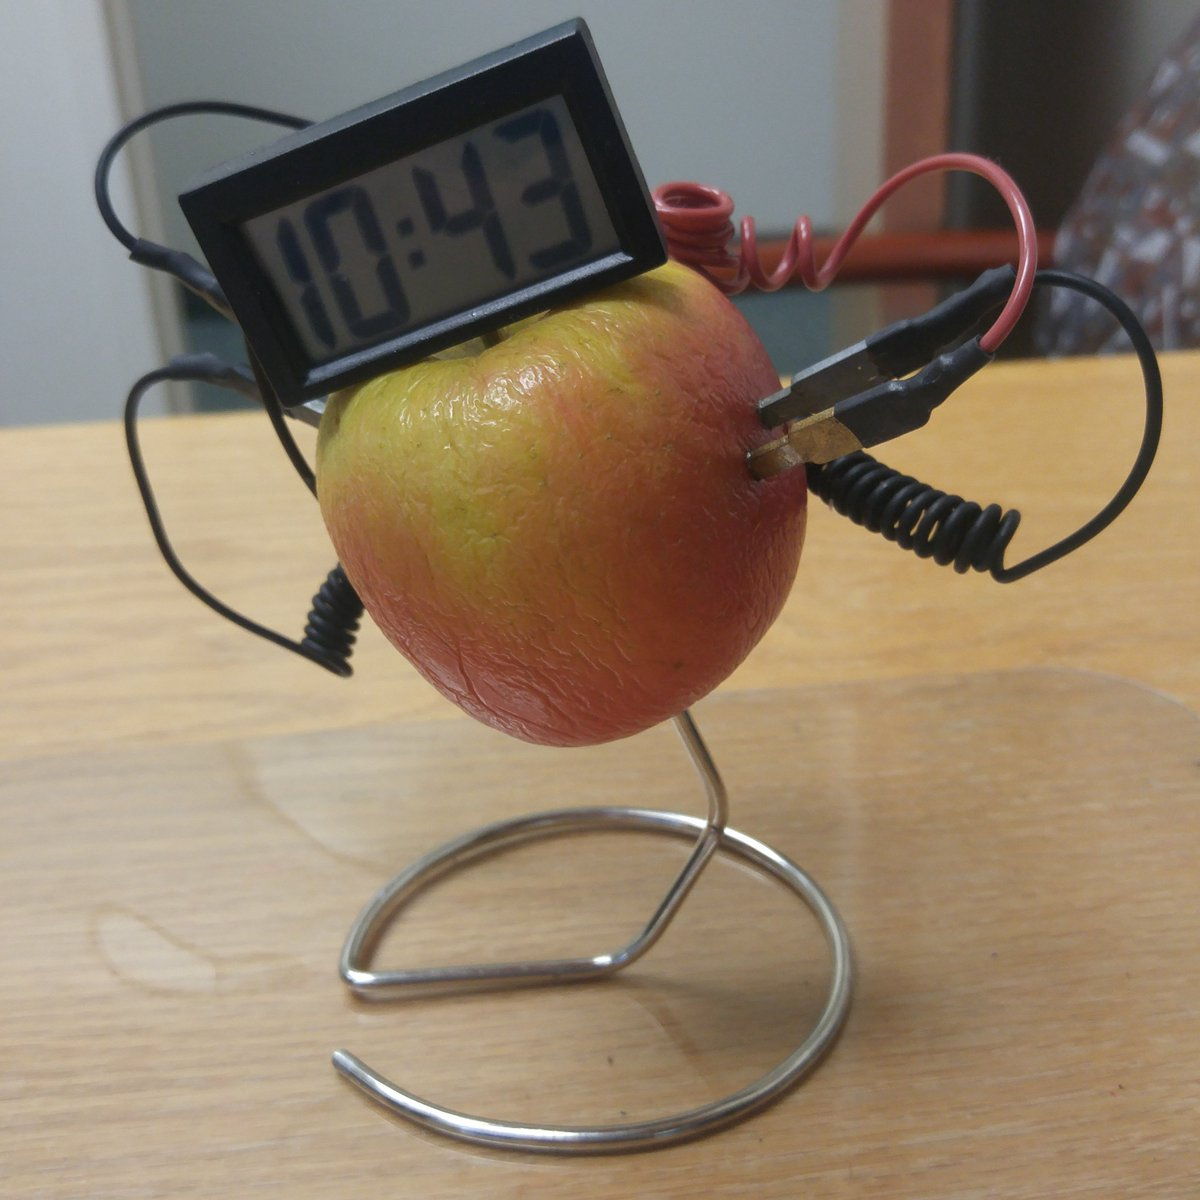 2018 Apple Clock - Created by Maryanna Wendel